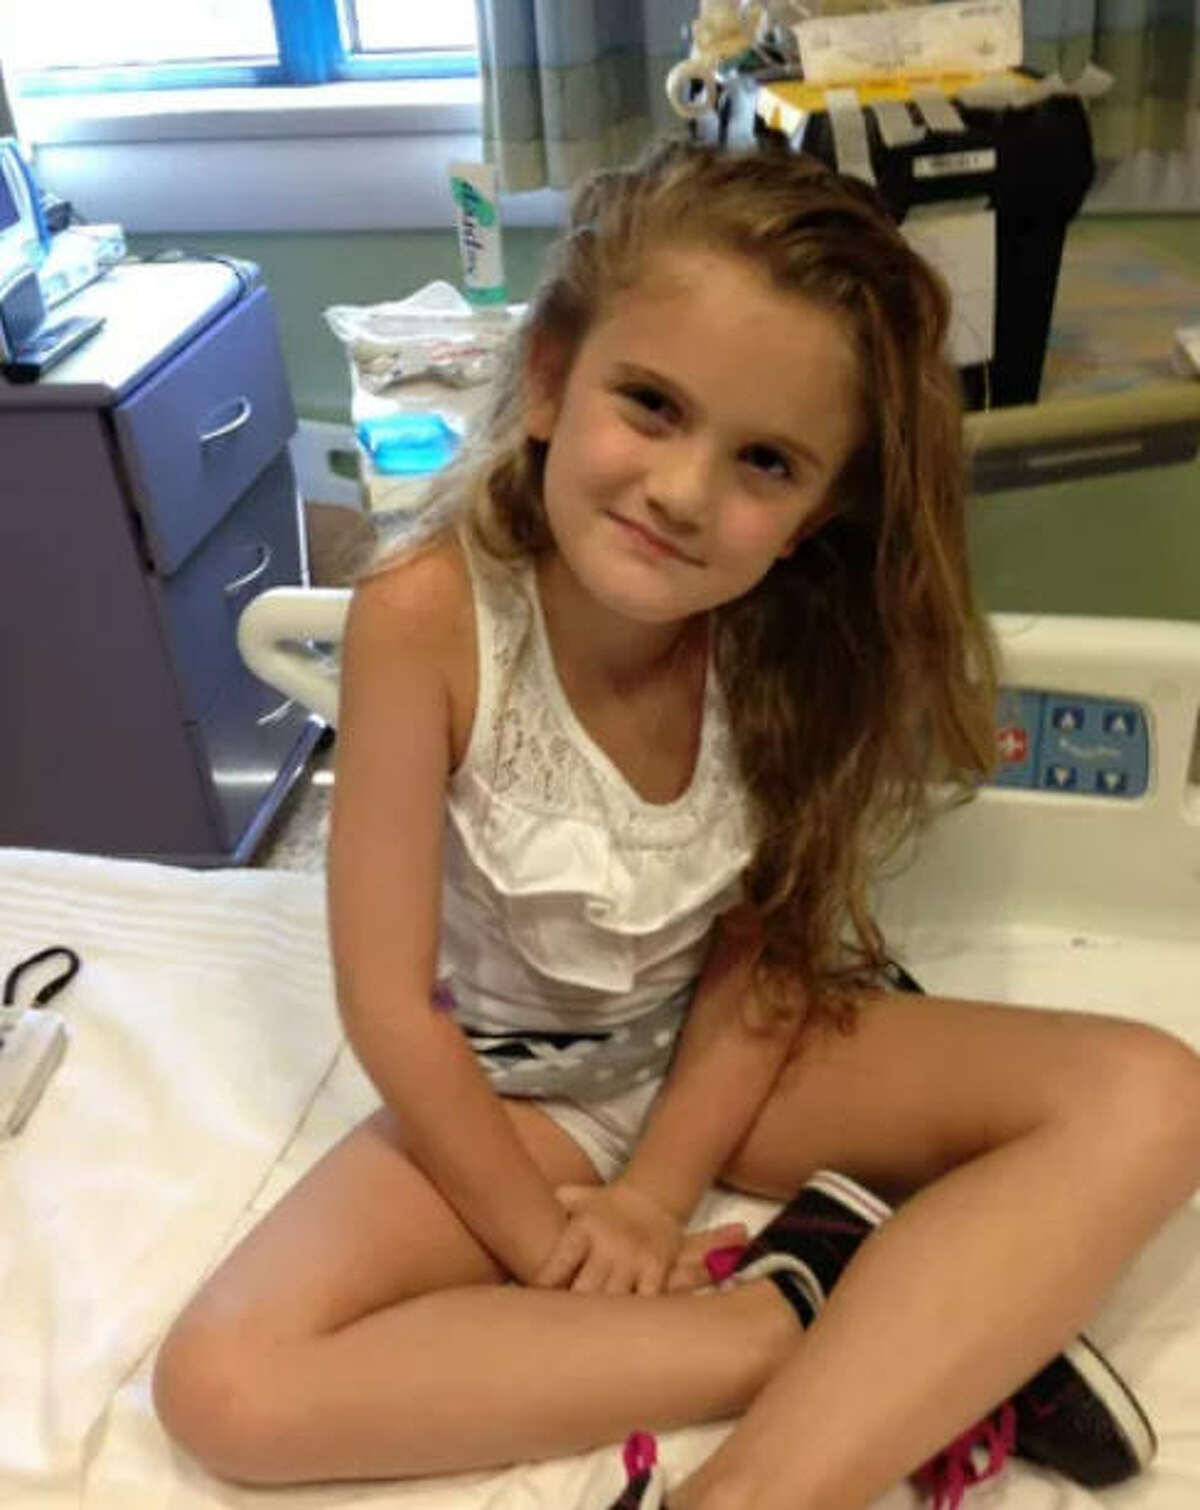 Sophia Campa-Peters, 9, of Brownfield, has captured the nation's attention after President Donald Trump answered her request for prayer before her brain surgery coming up on Friday.